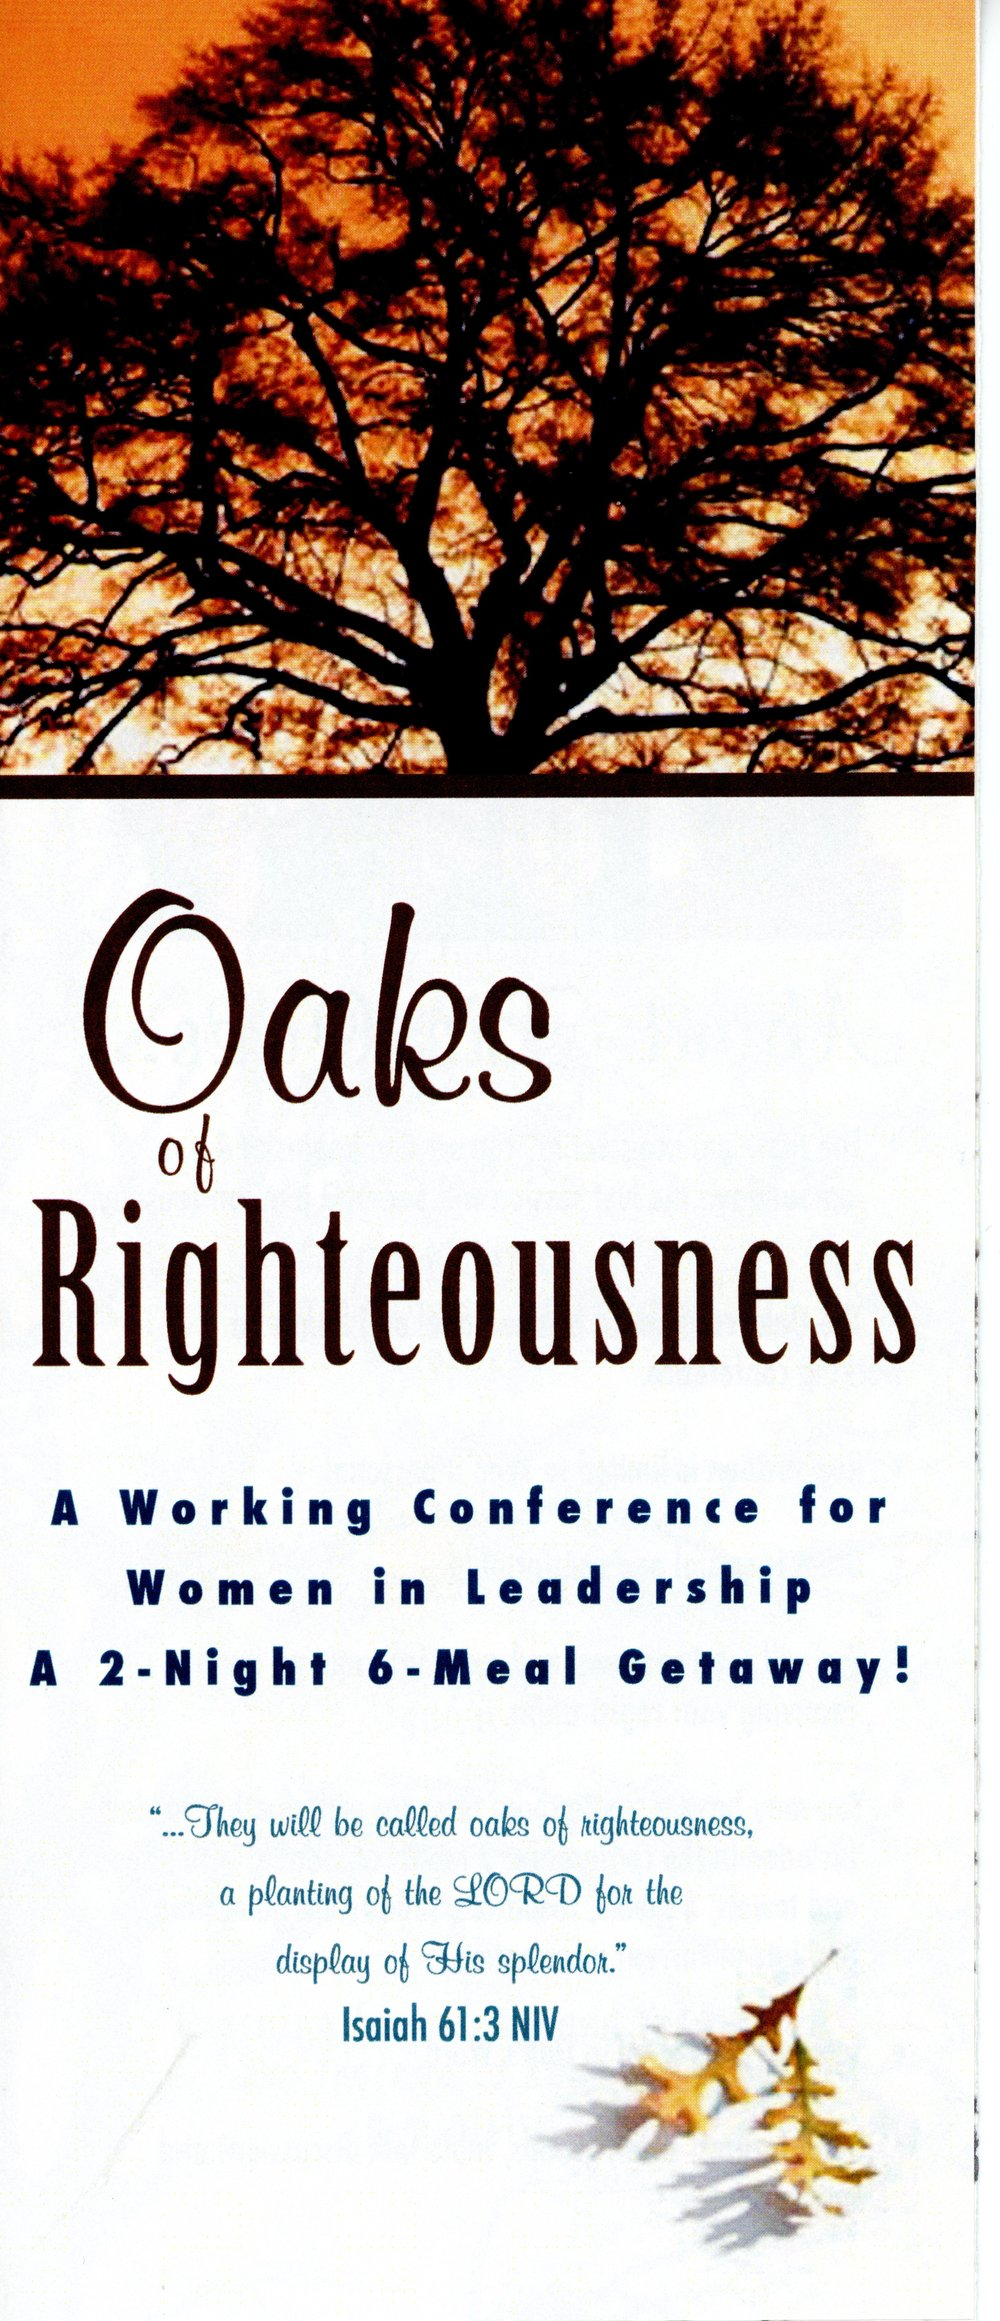 The Oaks - a Working Conference for Women in Leadership